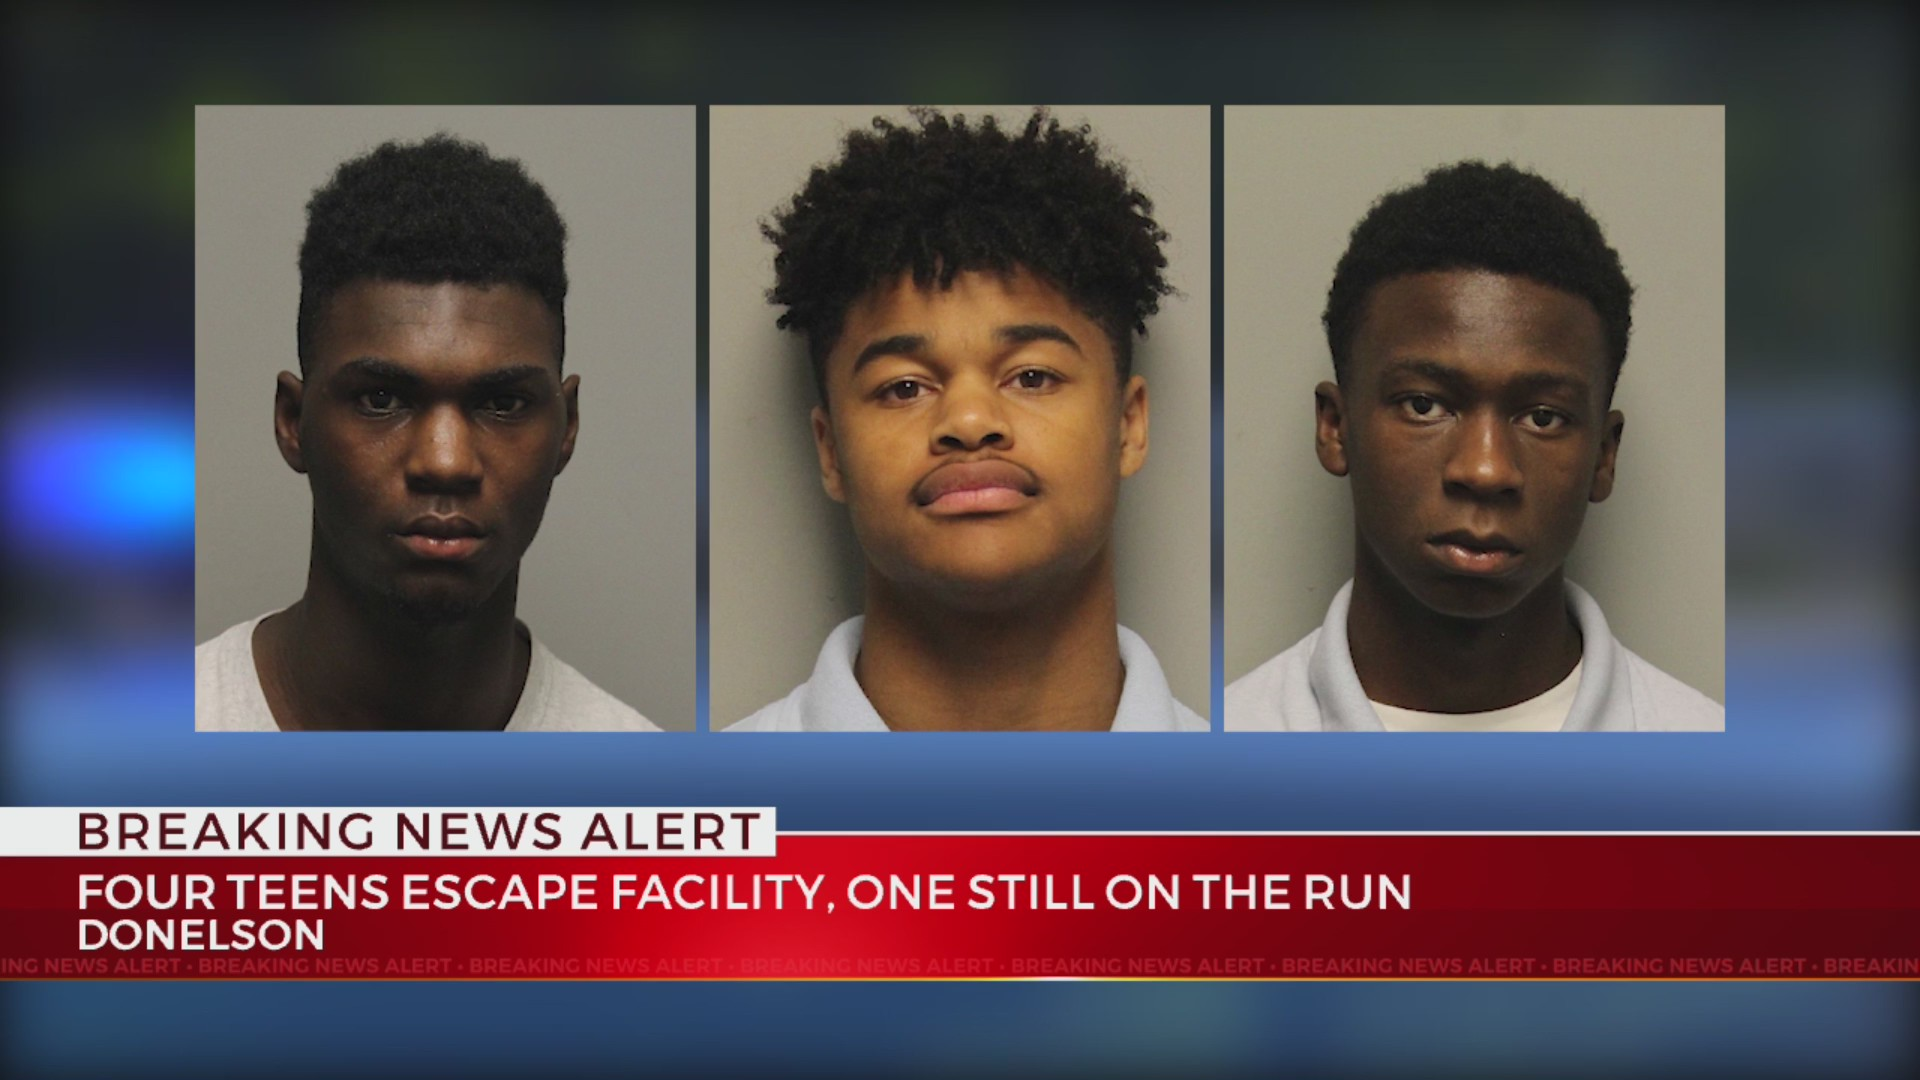 Three teens escaped